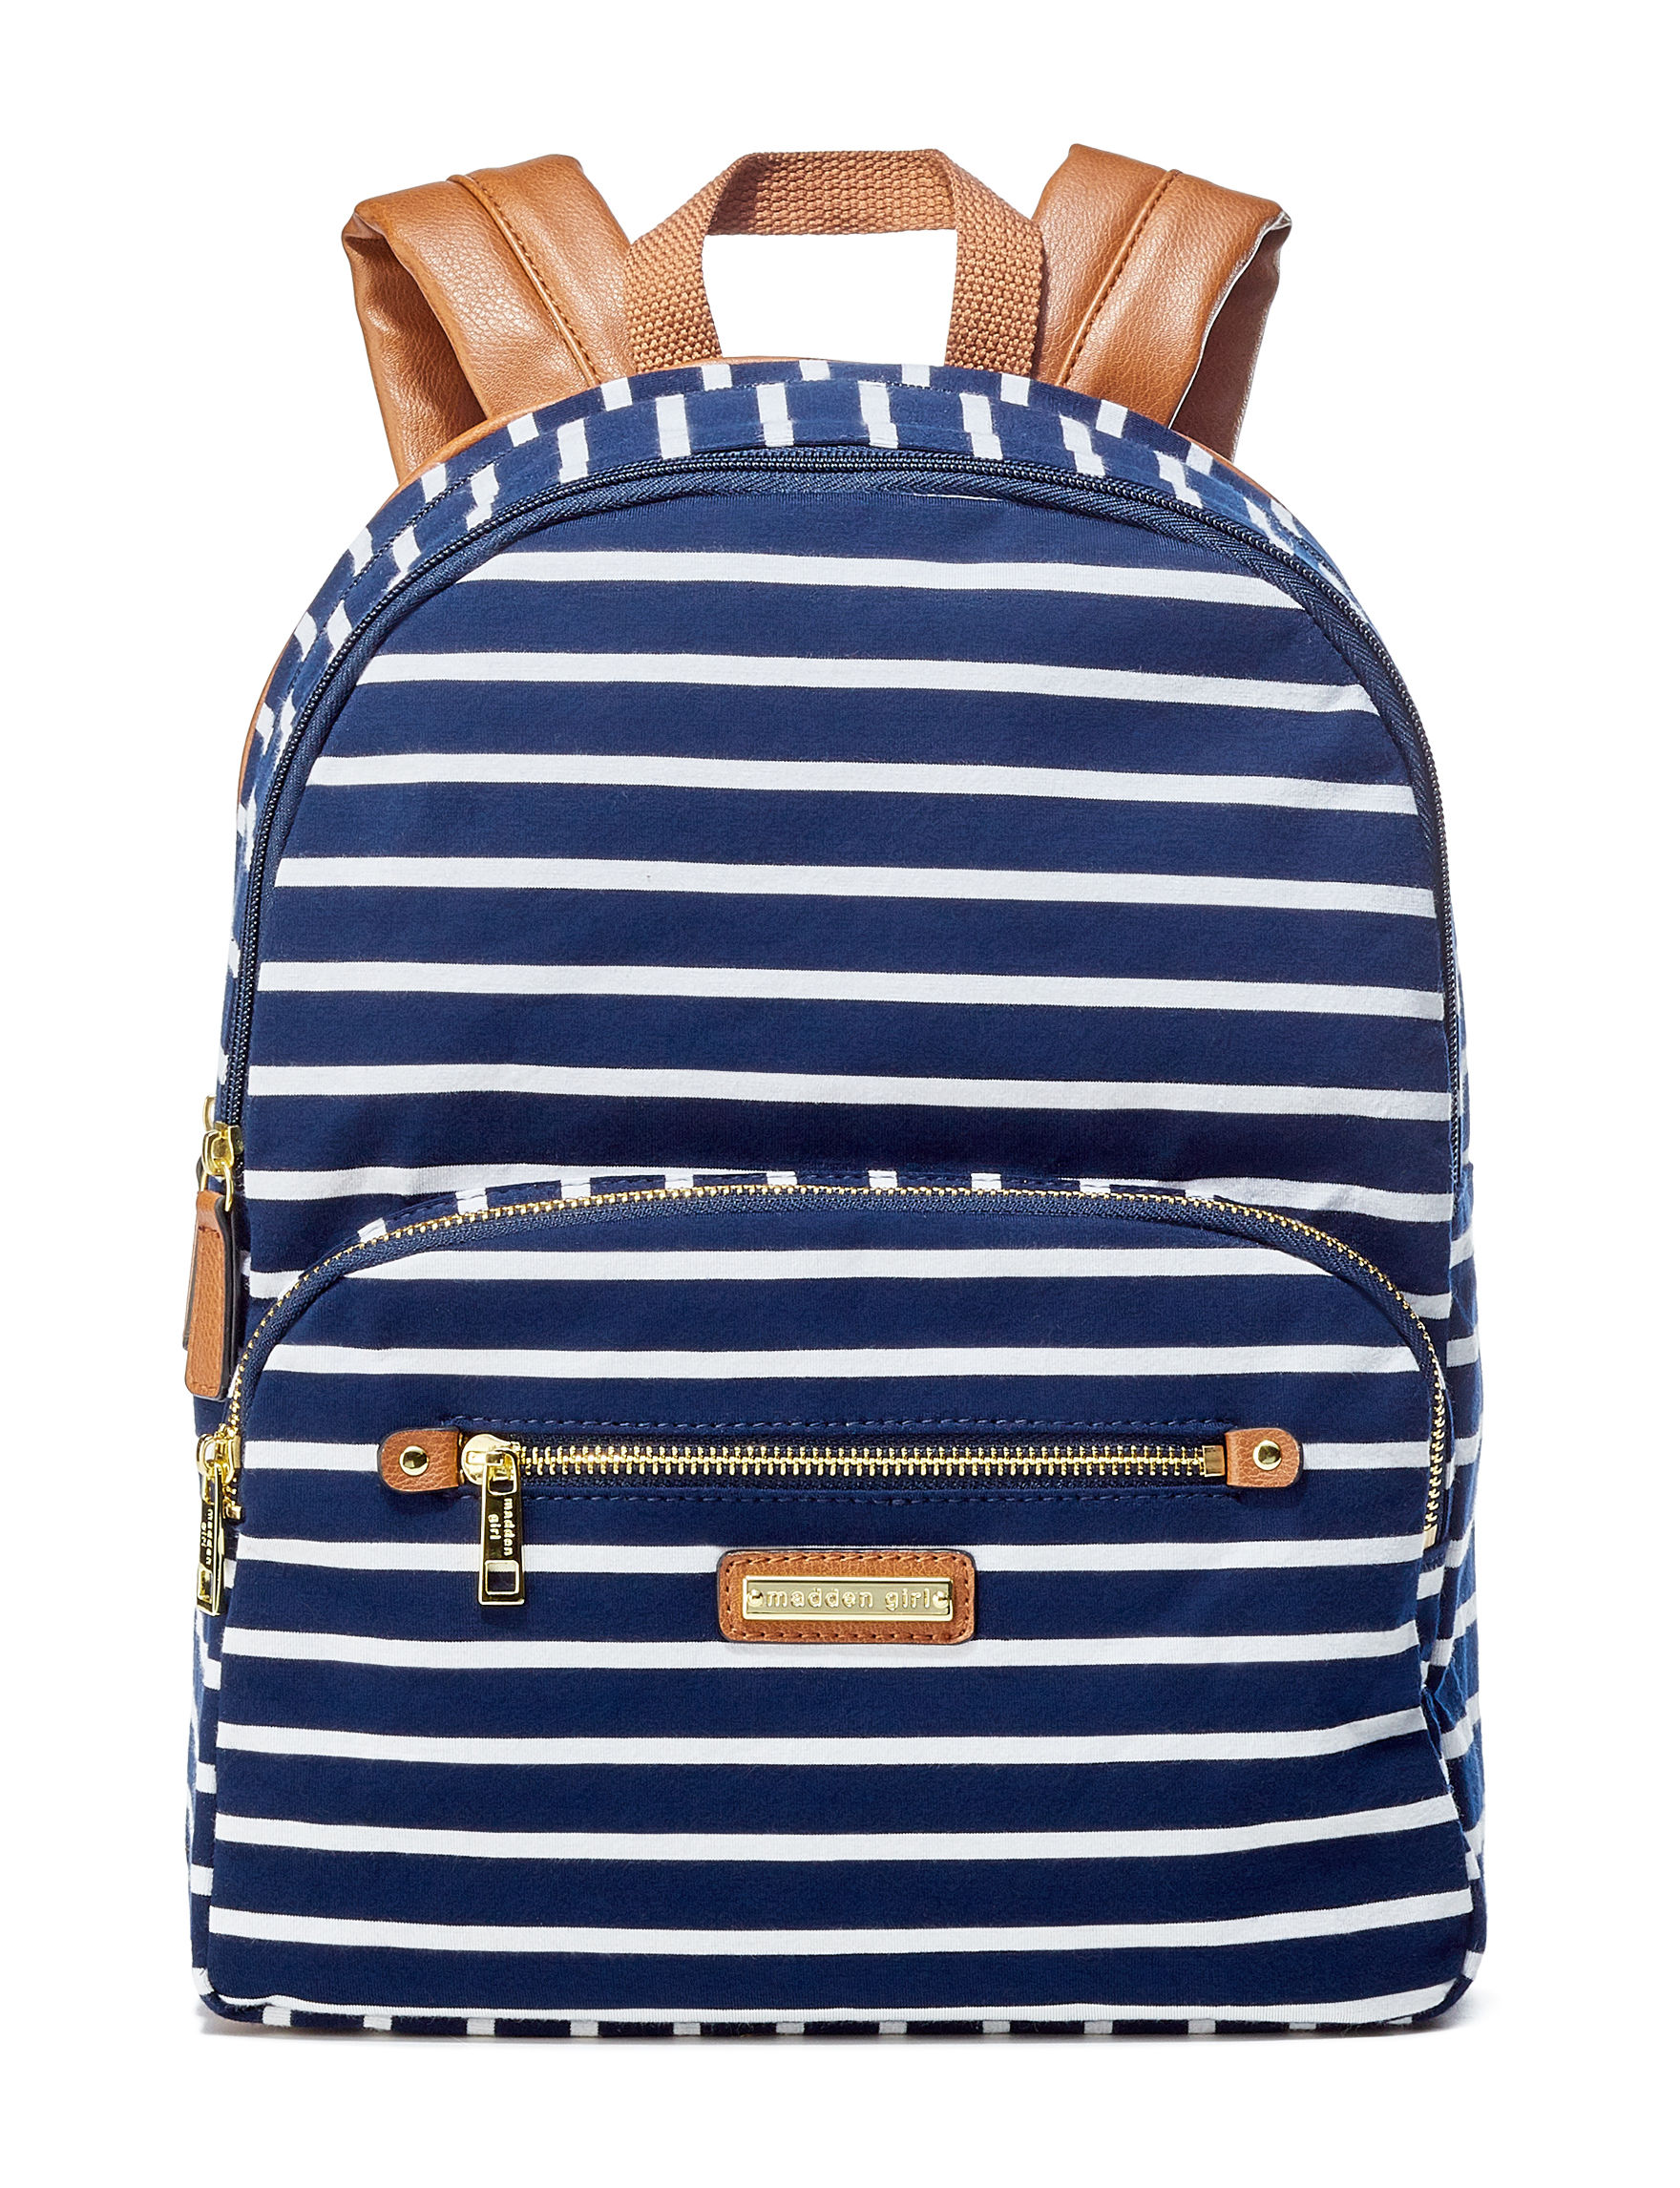 Madden Girl Navy / Multi Bookbags & Backpacks